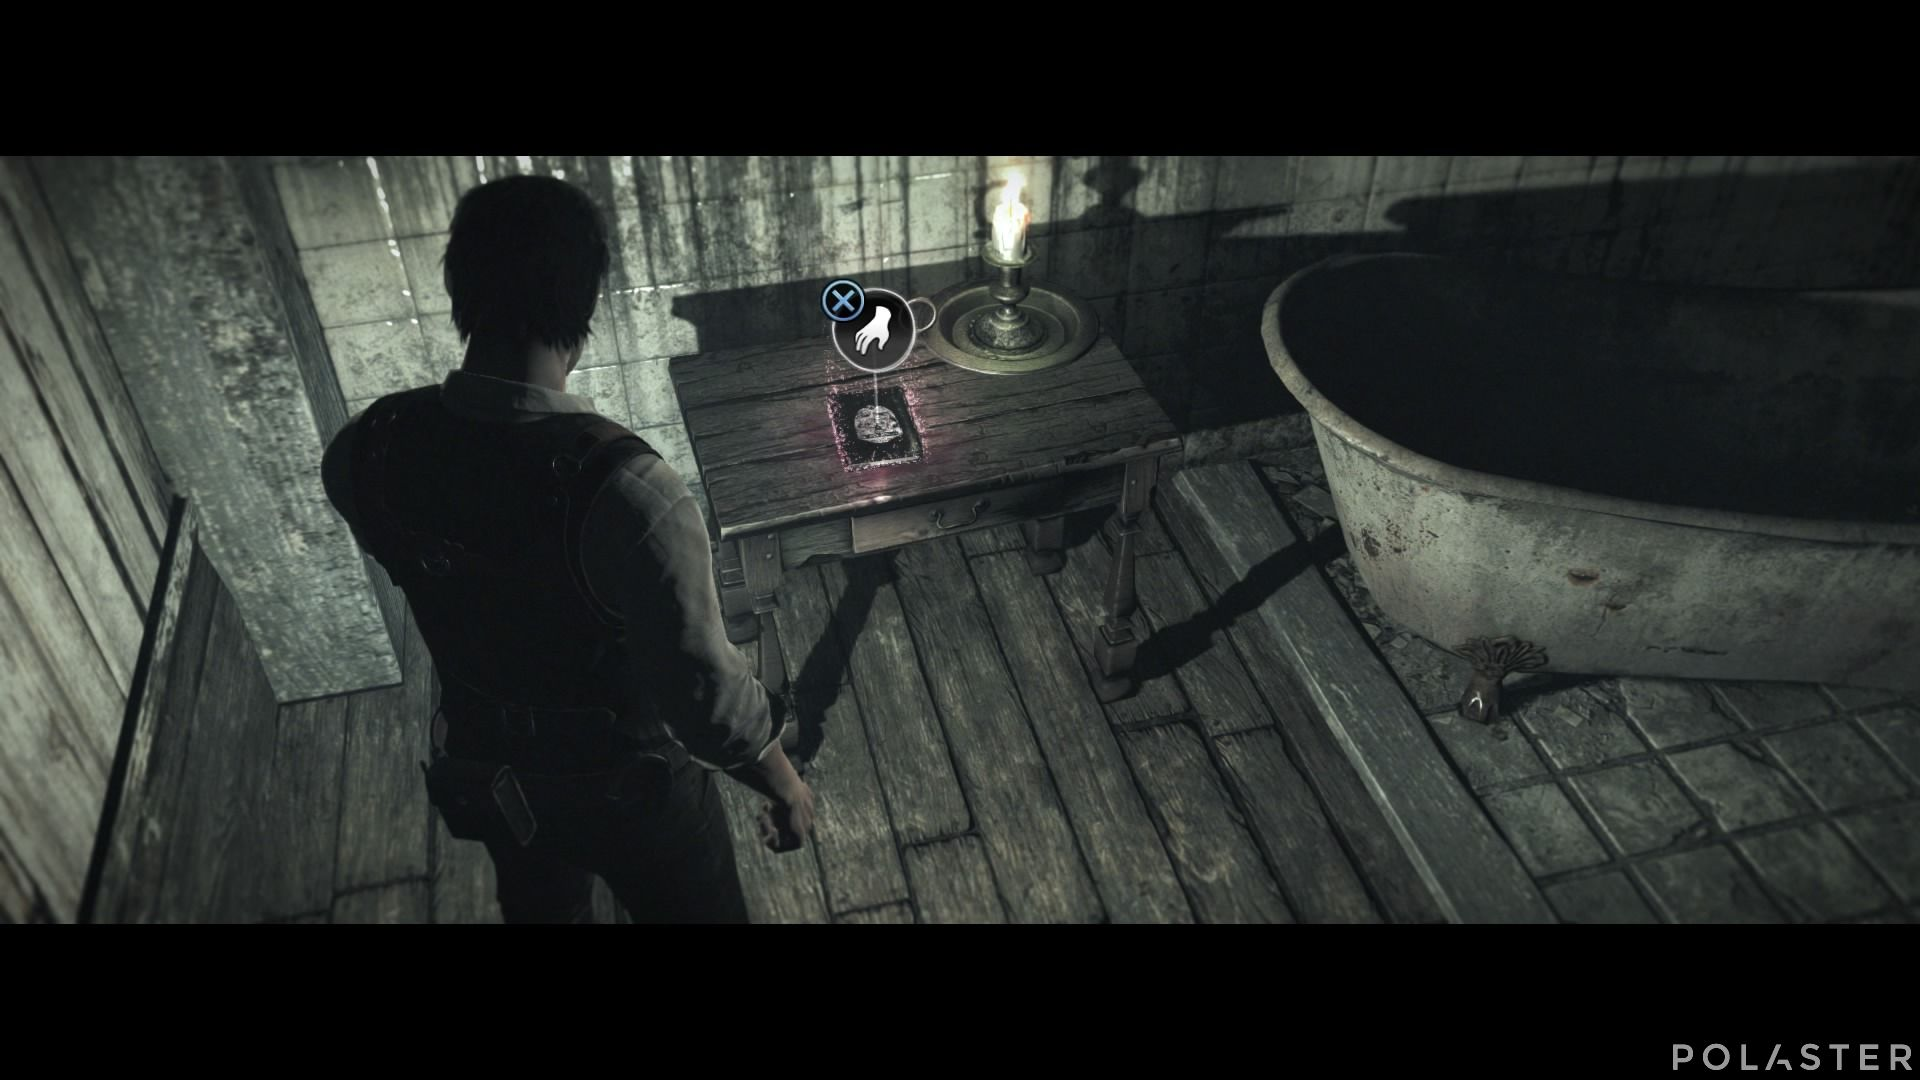 The Evil Within - Coleccionables - Documento personal: Entrada del diario - Diciembre de 2004